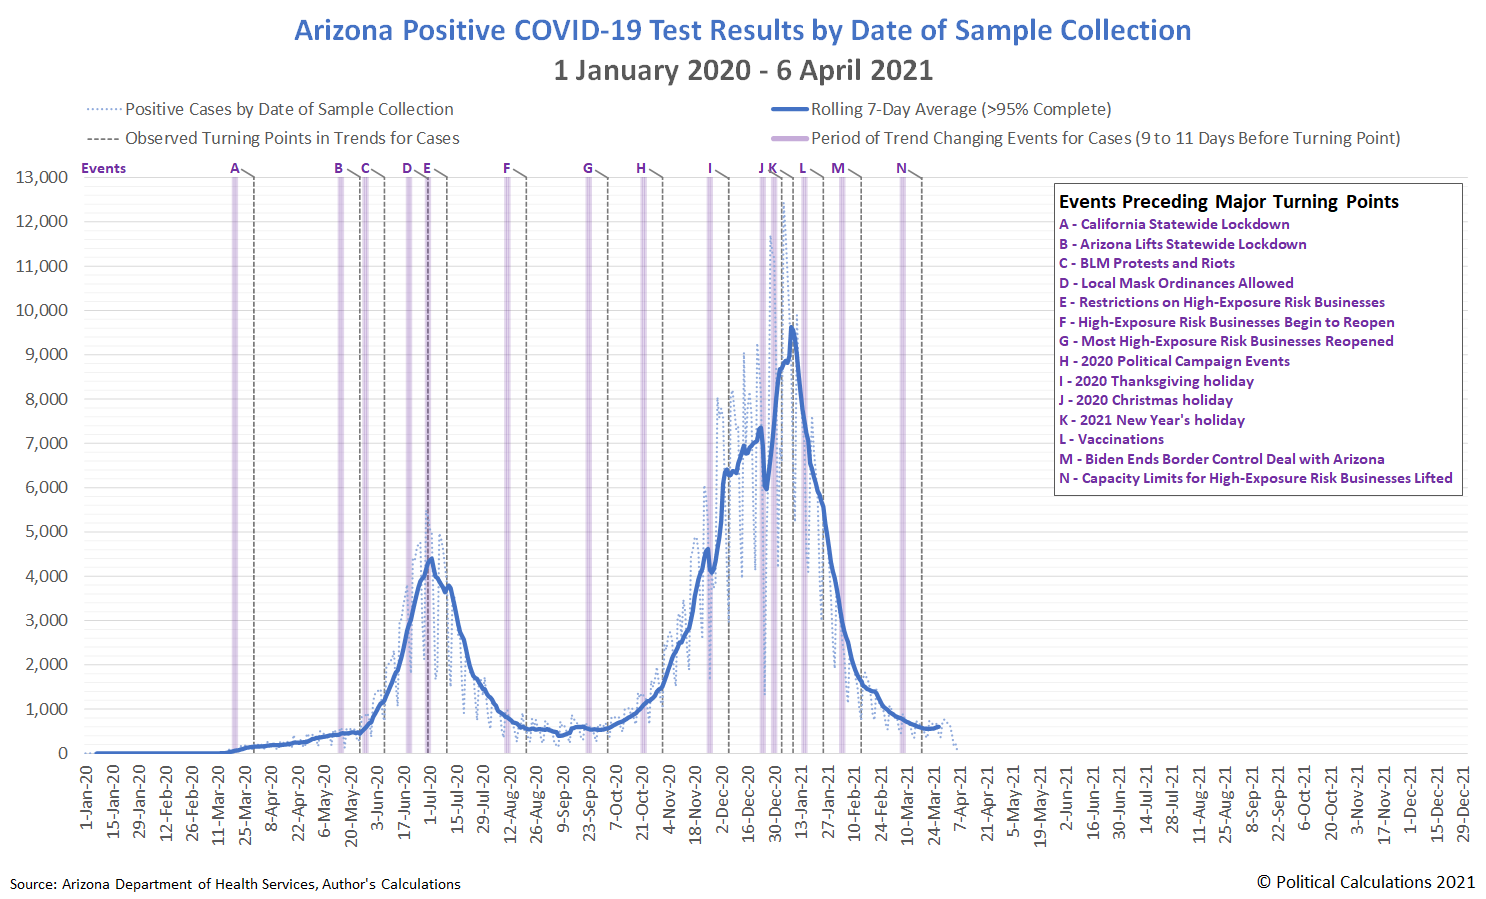 Arizona Positive COVID-19 Test Results by Date of Sample Collection, 1 January 2020 - 6 April 2021